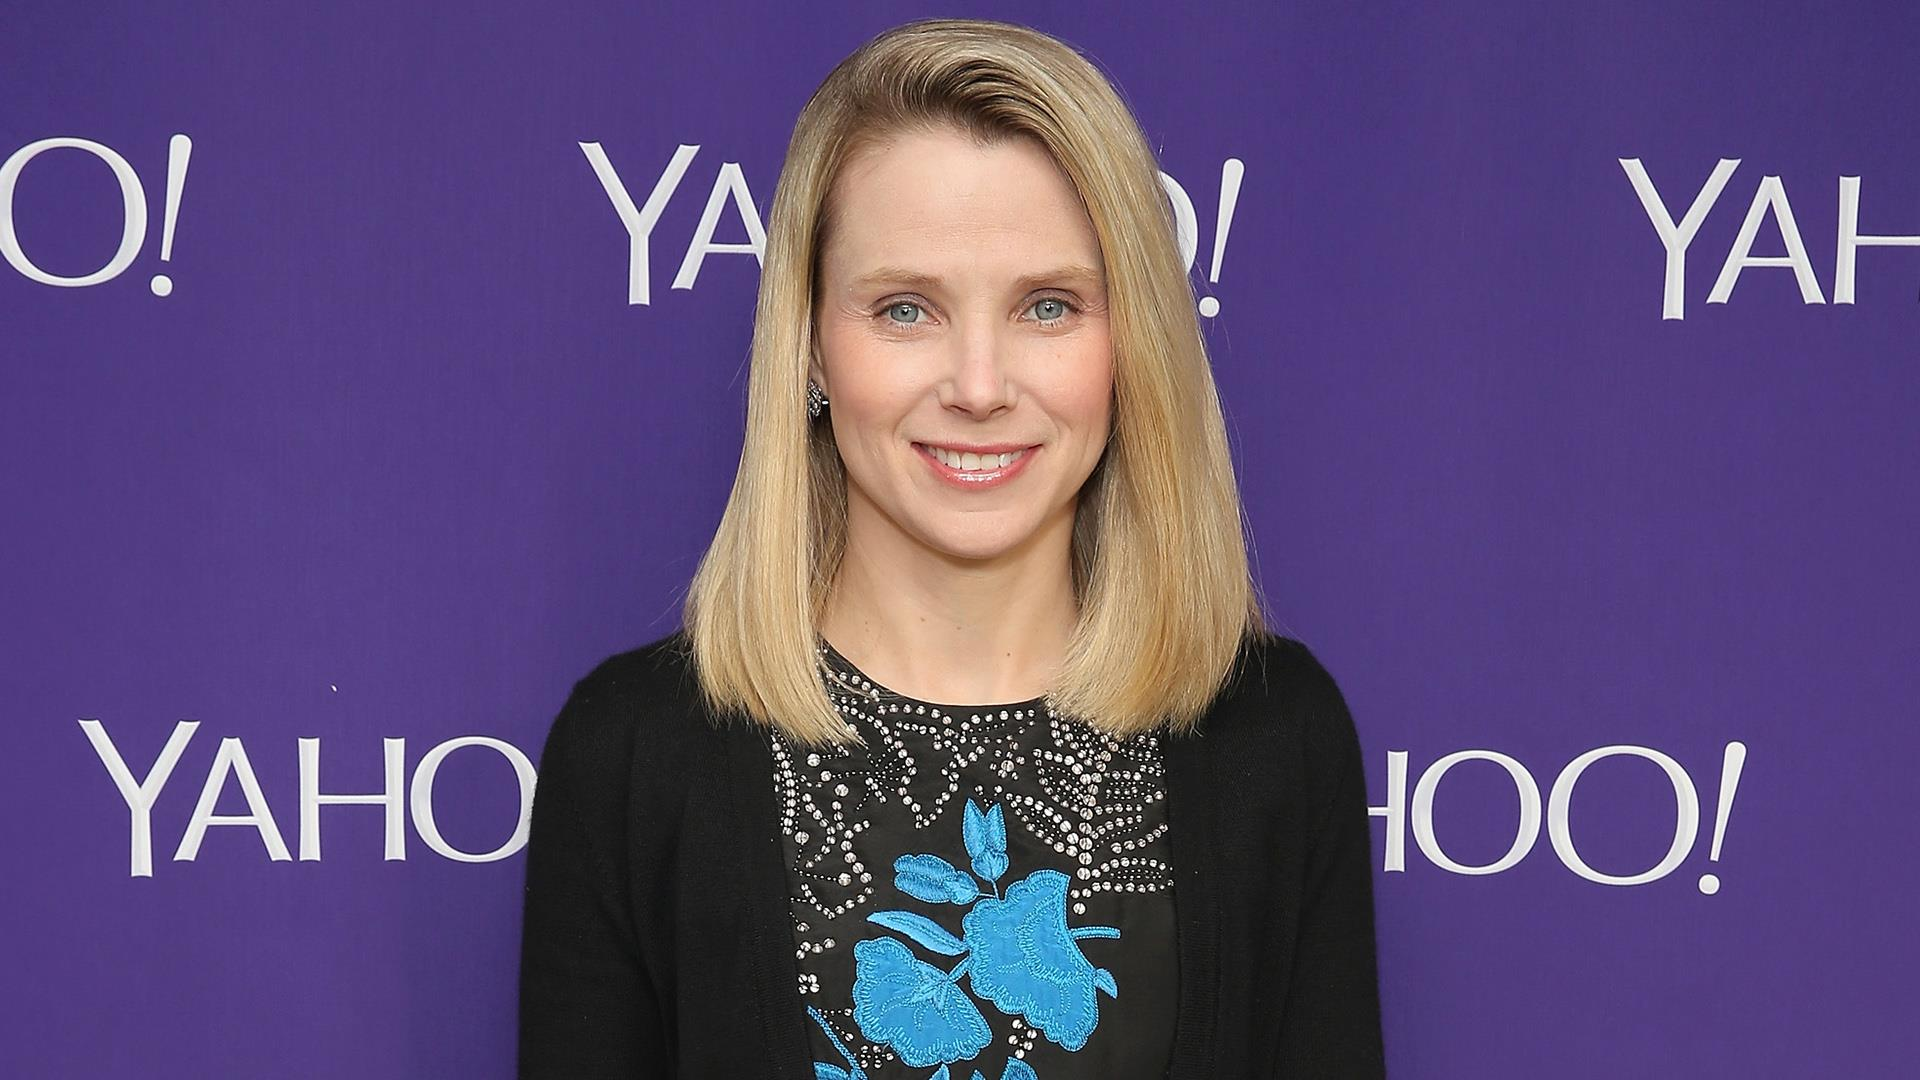 What's next for Marissa Mayer after resigning from Yahoo board of directors?